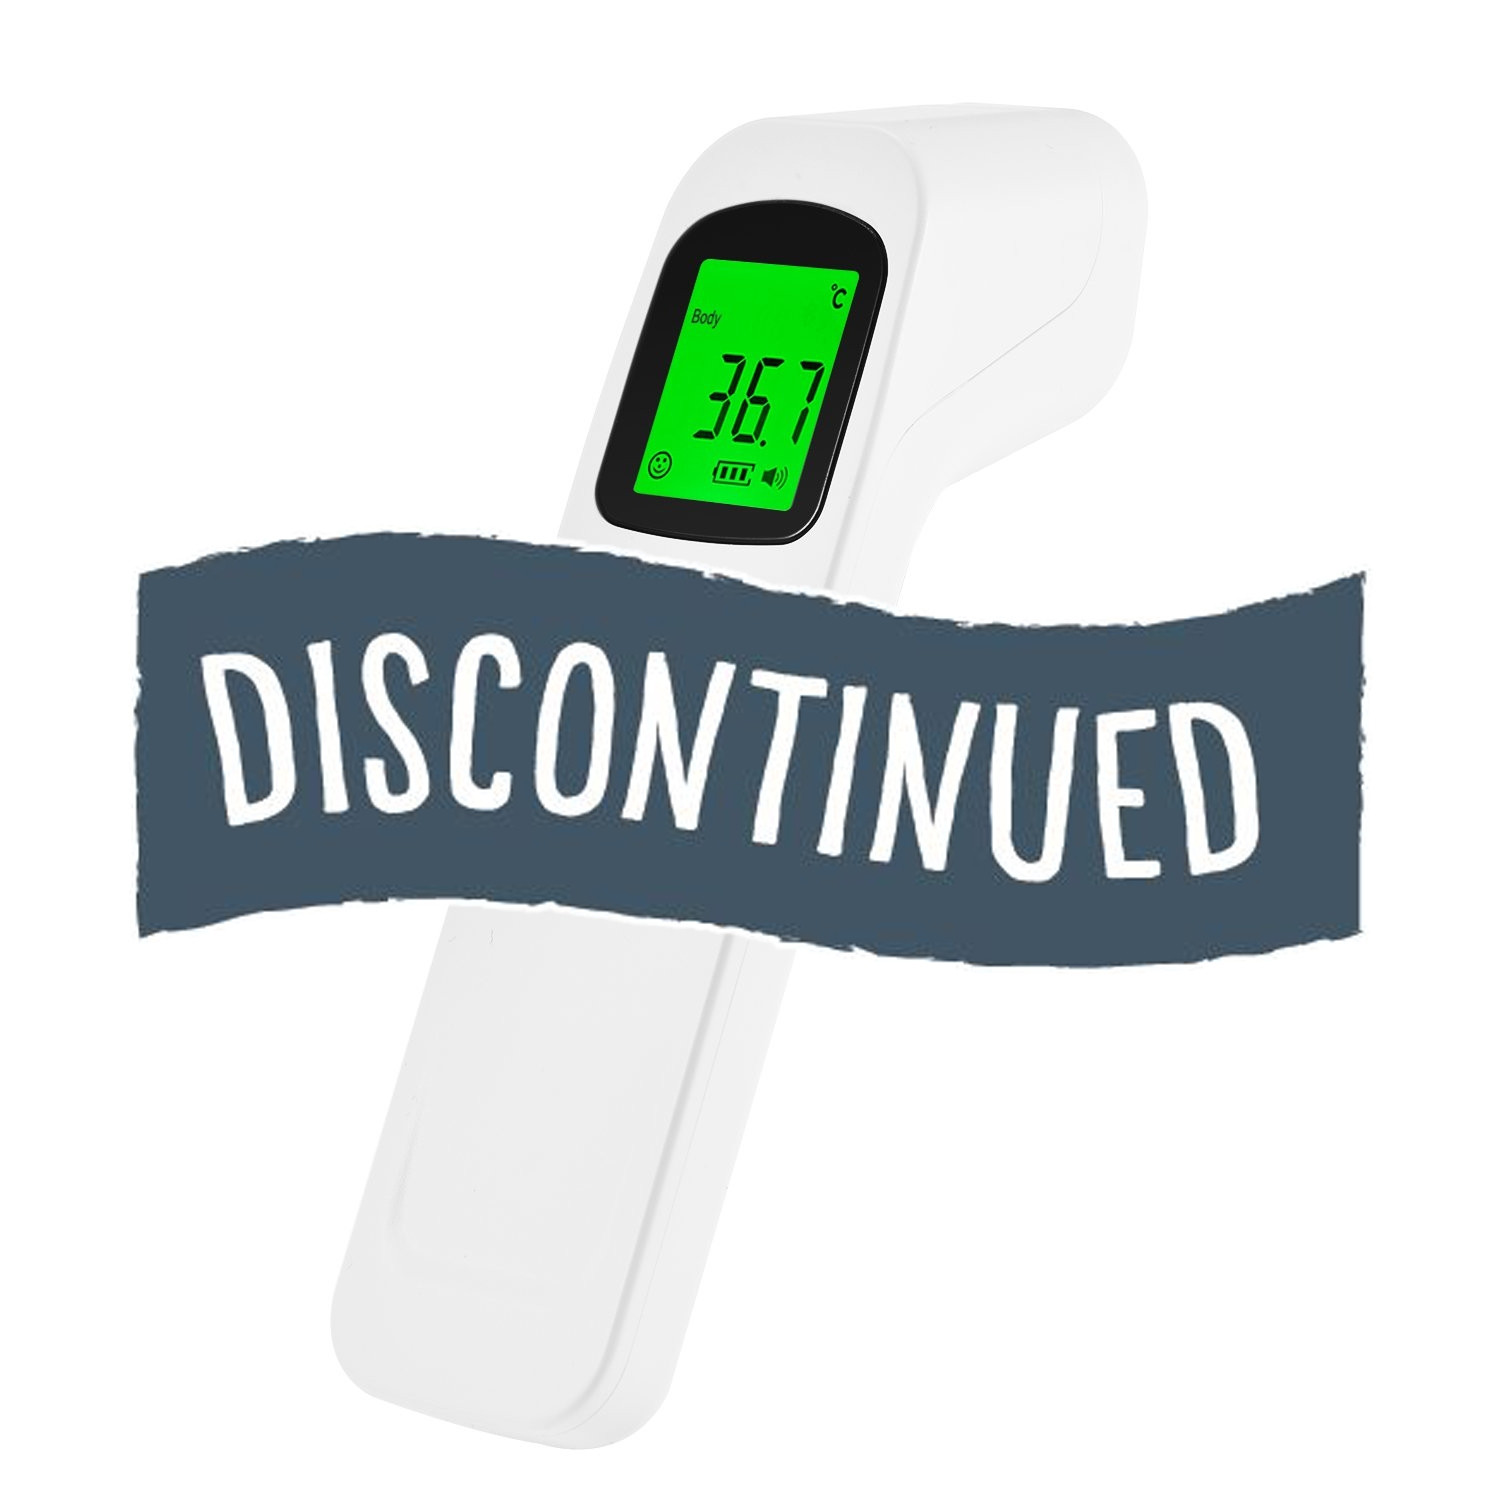 (Discontinued) Phicon Non-Contact Infrared Thermometer